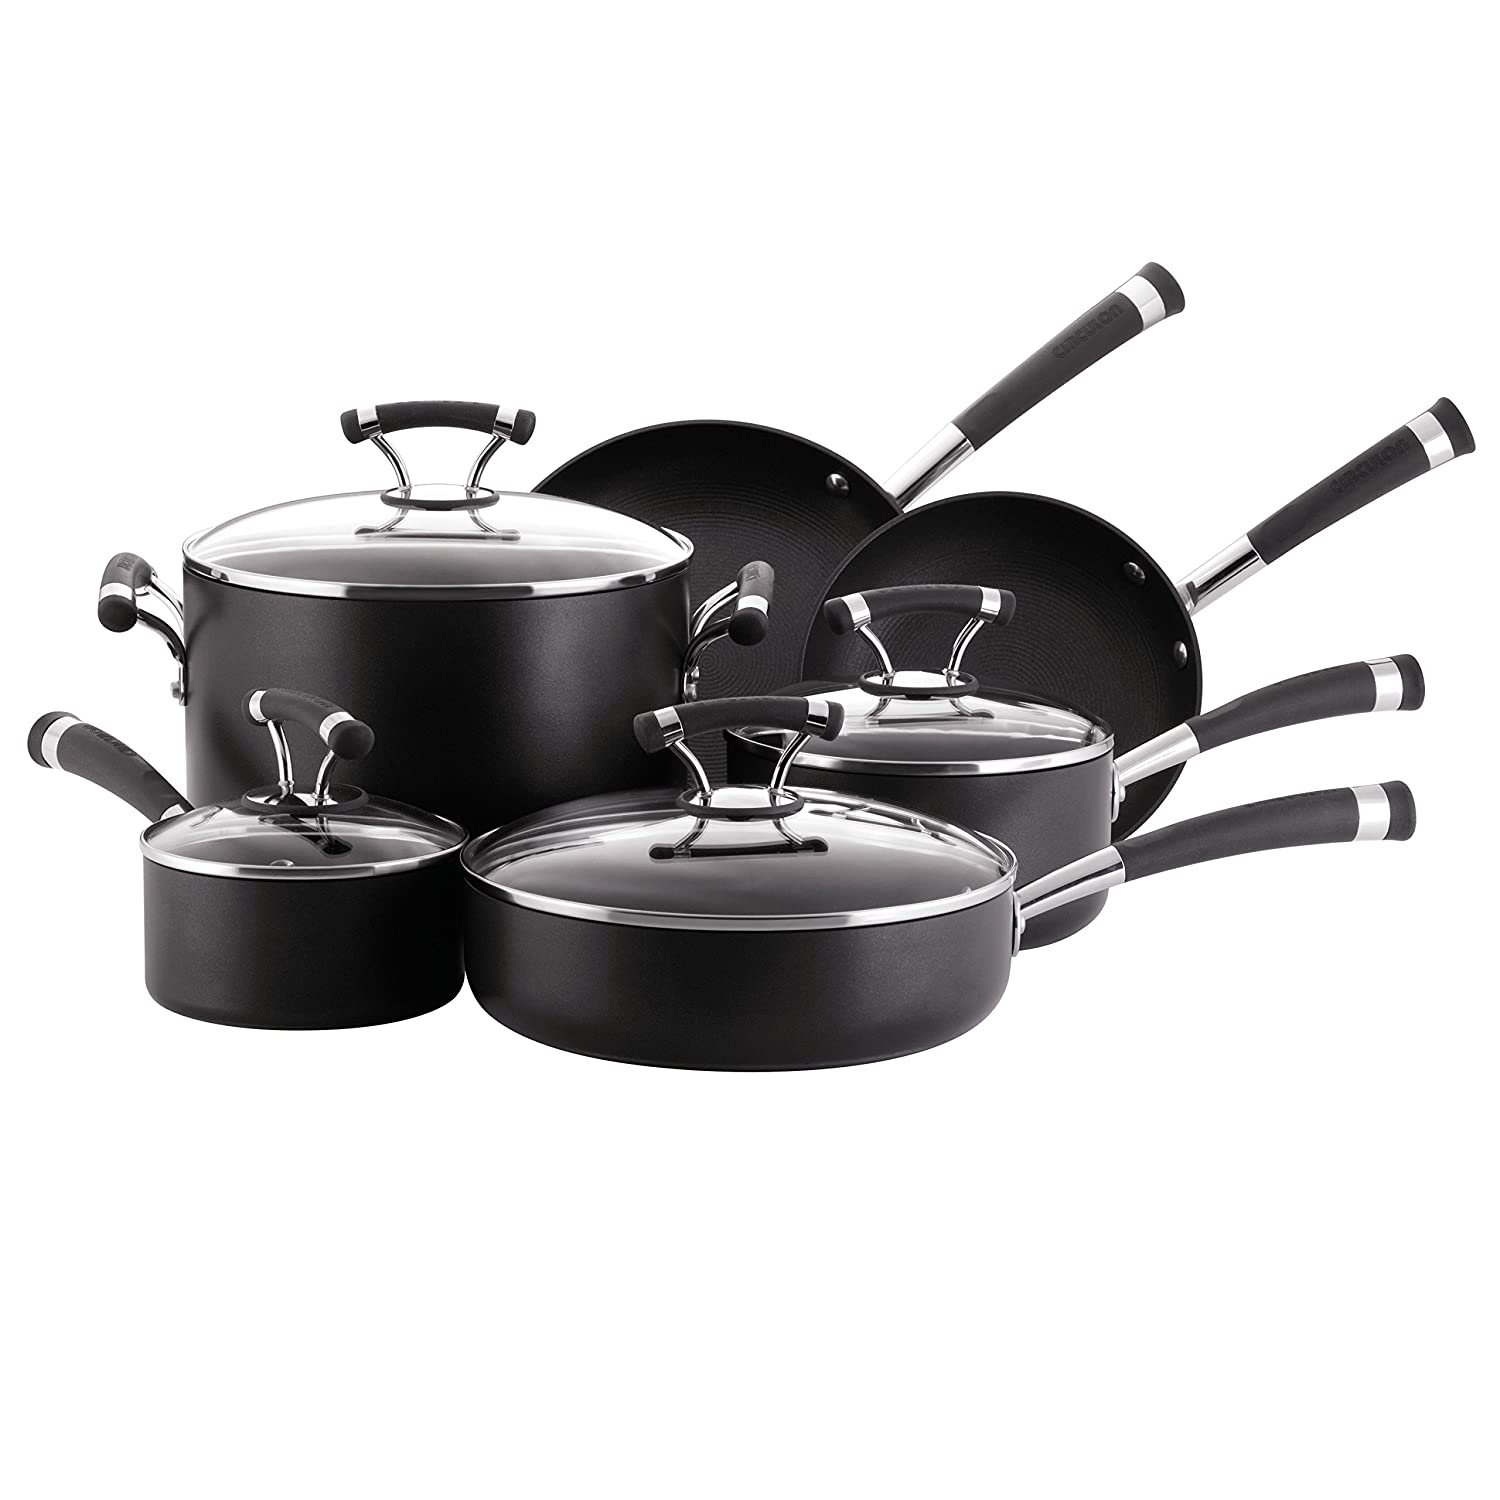 Circulon Contempo Hard-Anodized Nonstick 10-Piece Cookware Set, Black